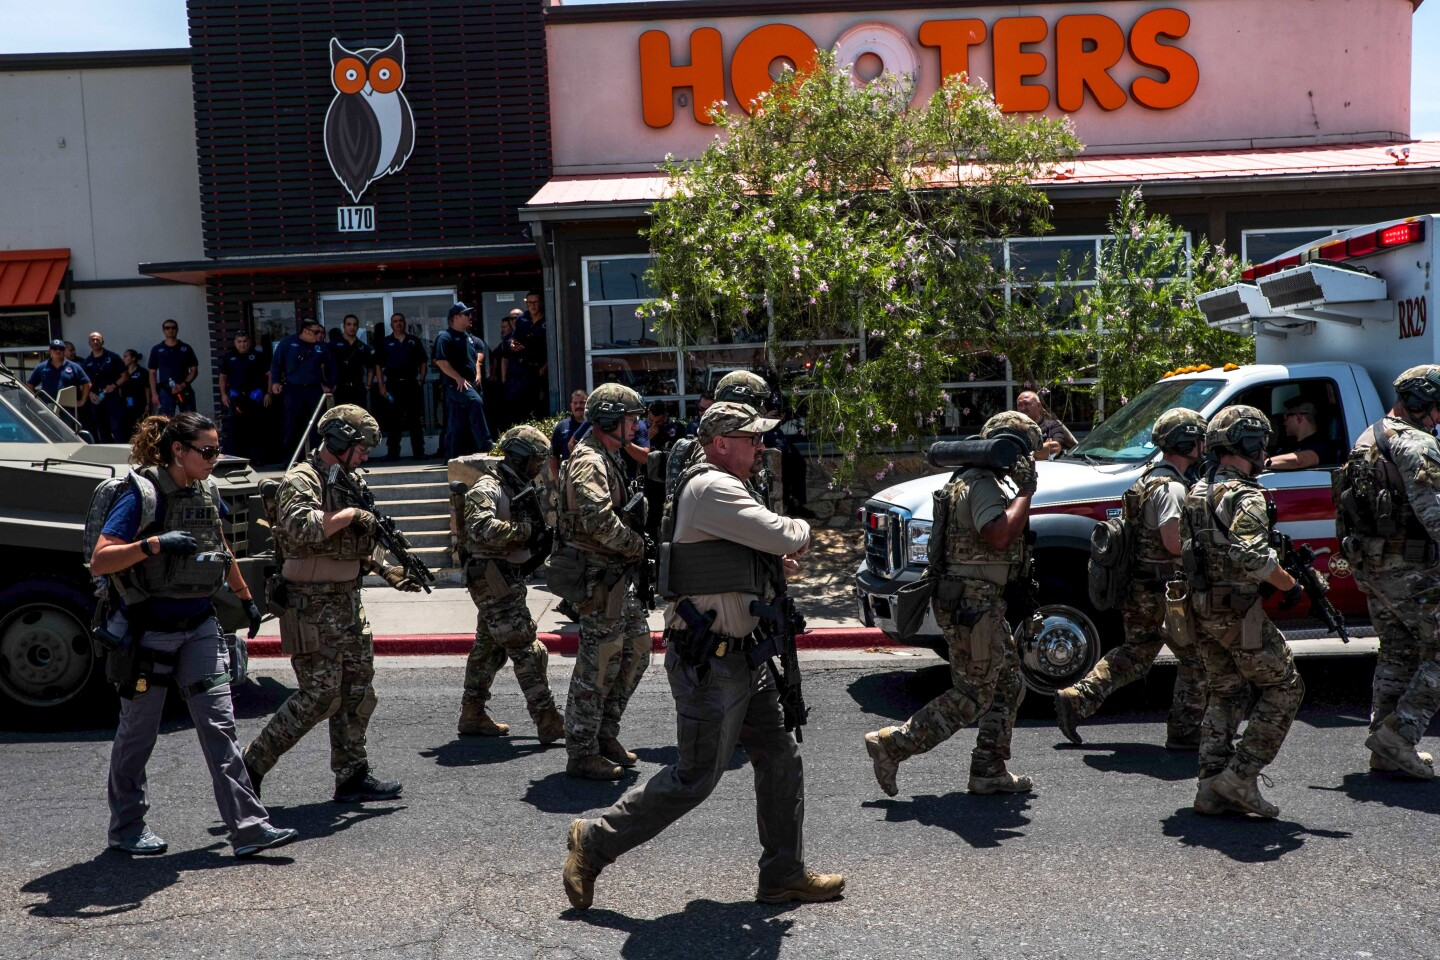 """Law enforcement agencies respond to an active shooter at a Wal-Mart near Cielo Vista Mall in El Paso, Texas, Saturday, Aug. 3, 2019. - Police said there may be more than one suspect involved in an active shooter situation Saturday in El Paso, Texas. City police said on Twitter they had received """"multi reports of multipe shooters."""" There was no immediate word on casualties. (Photo by Joel Angel JUAREZ / AFP) (Photo credit should read JOEL ANGEL JUAREZ/AFP/Getty Images) *** BESTPIX *** ** OUTS - ELSENT, FPG, CM - OUTS * NM, PH, VA if sourced by CT, LA or MoD **"""